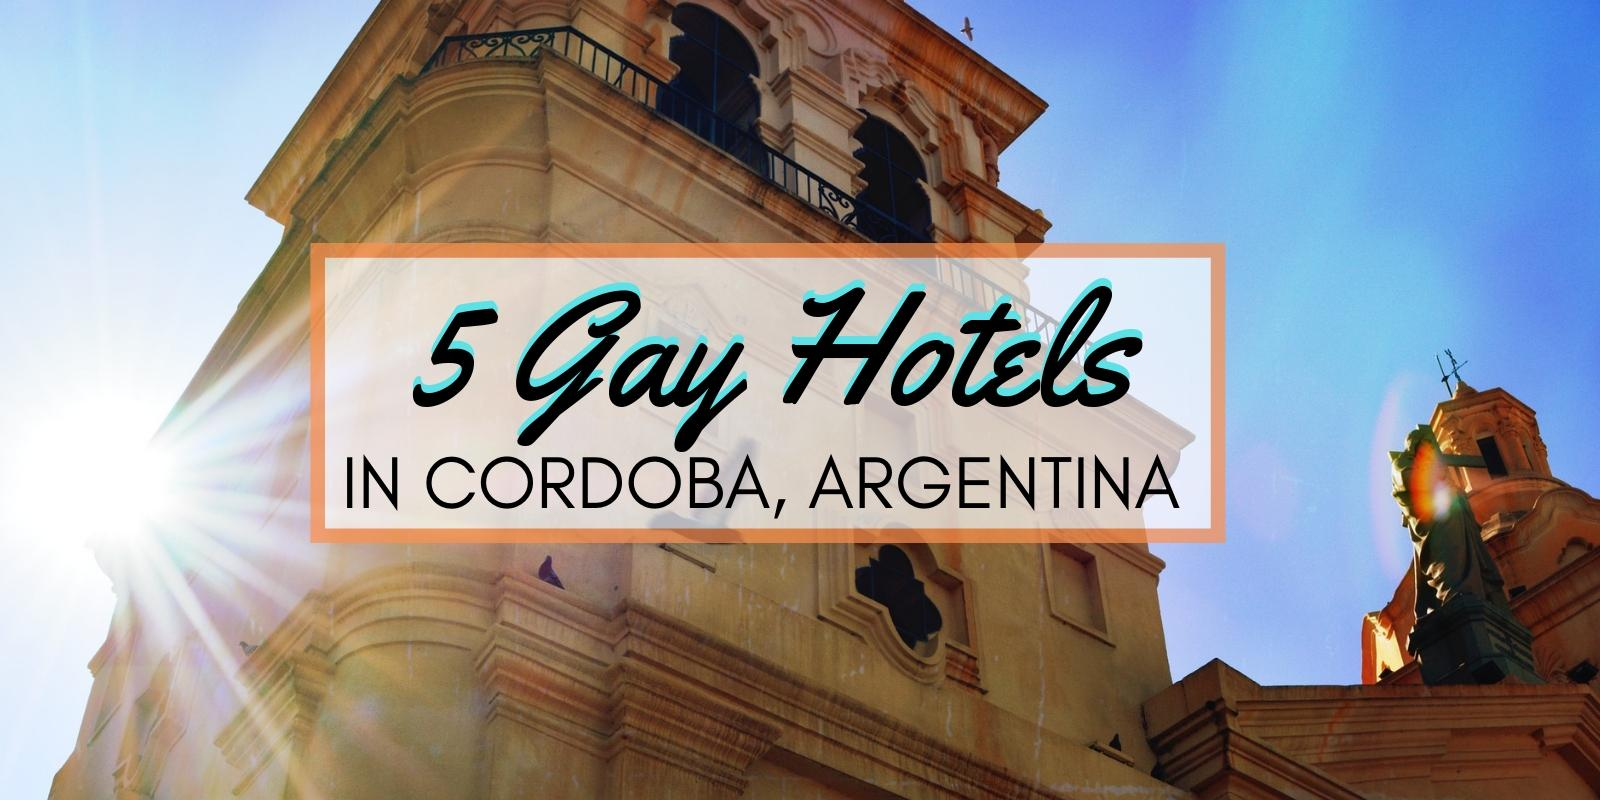 Our favourite gay friendly accommodation options in Cordoba, Argentina.